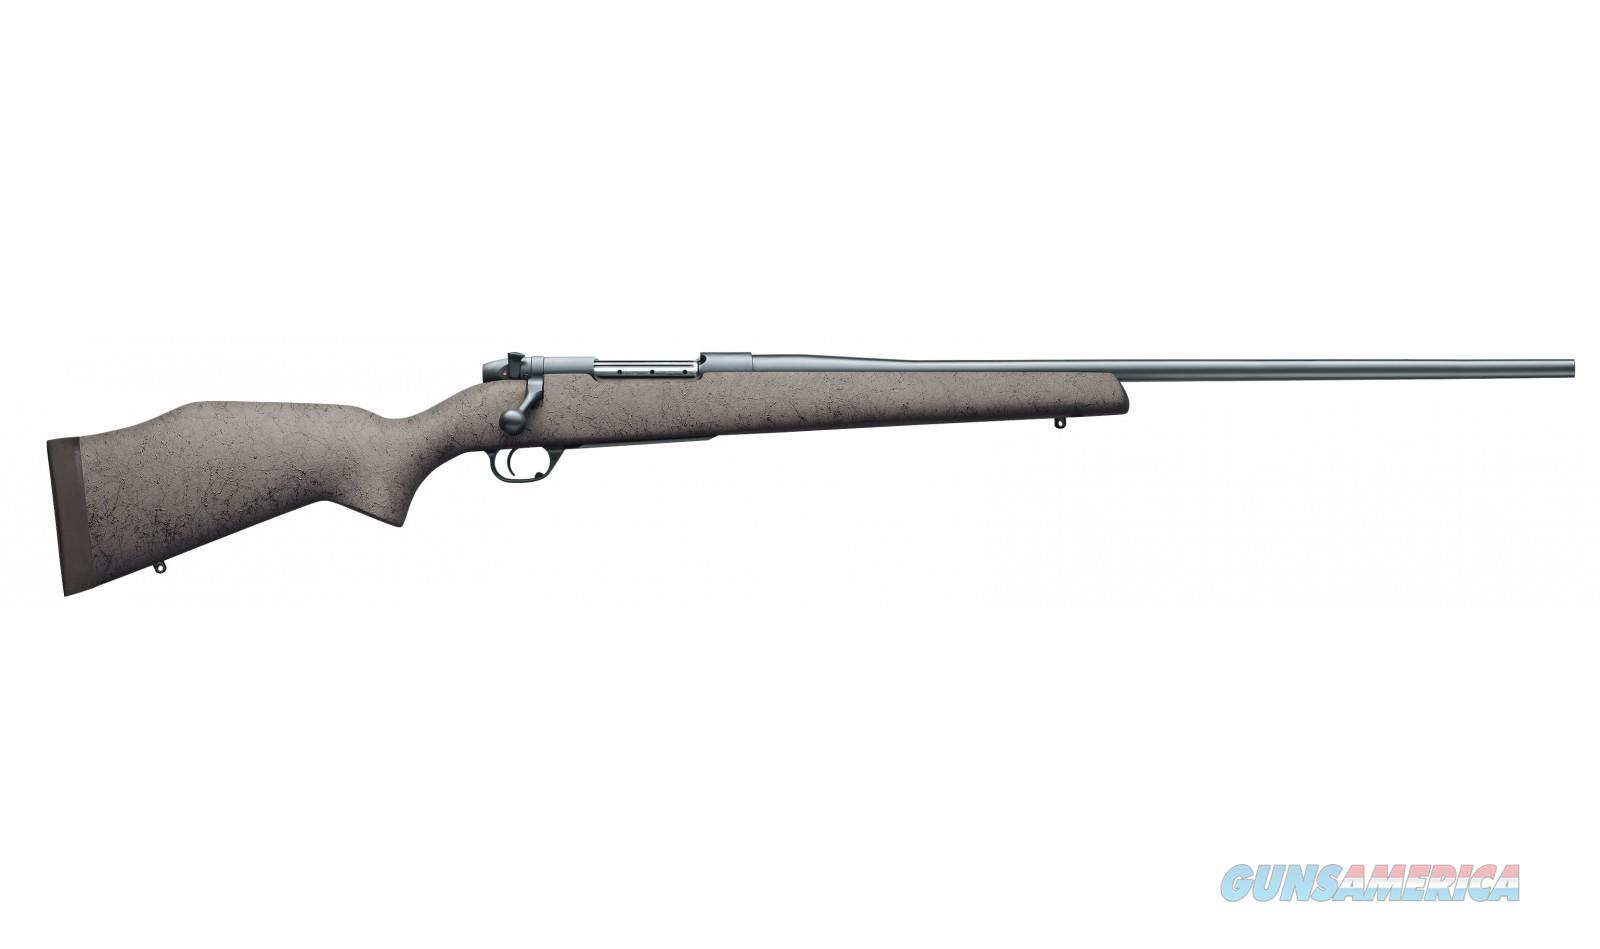 "Weatherby Mark V Fibermark Composite Bolt Action Rifle .300 Weatherby Mag 26"" Blued Barrel 3 Rounds Monte Carlo Composite Stock   Guns > Rifles > Weatherby Rifles > Sporting"